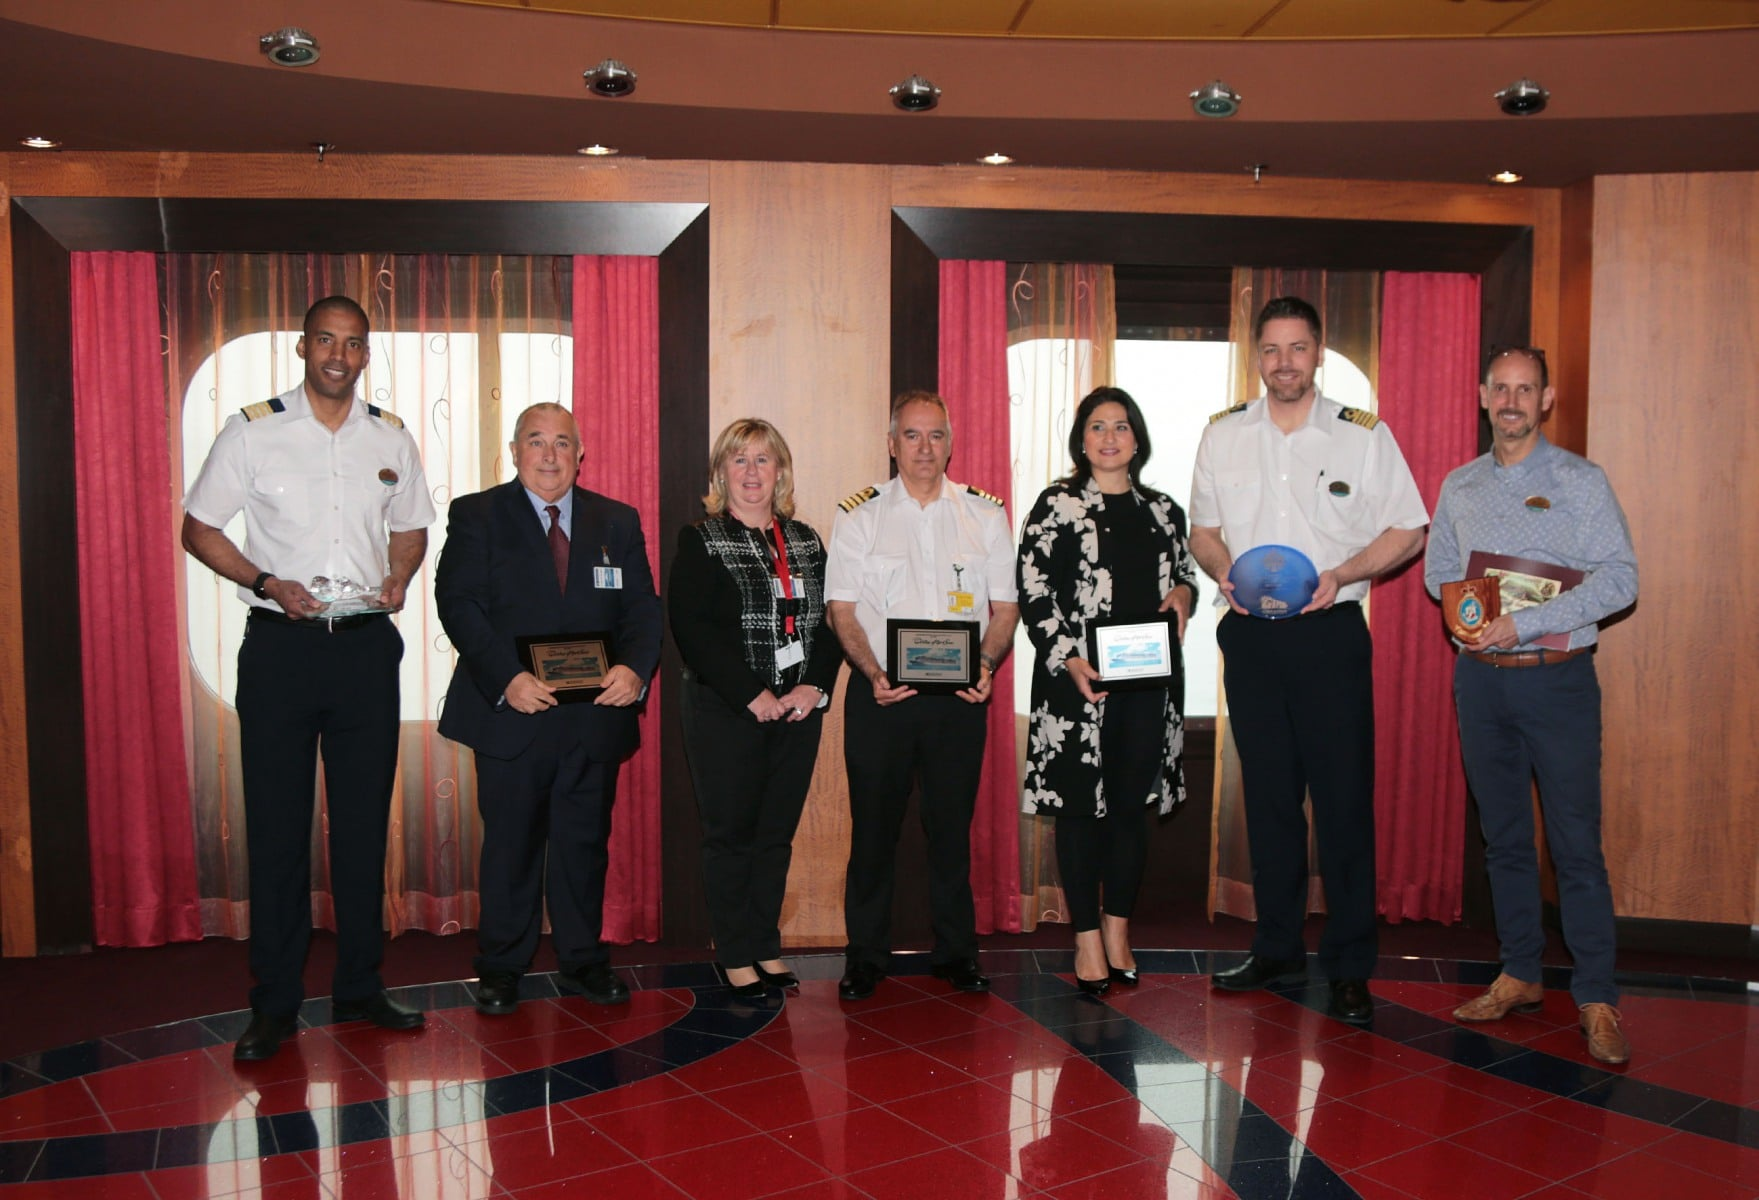 Escala-inaugural-del-crucero-Ovation-of-the-Seas-57